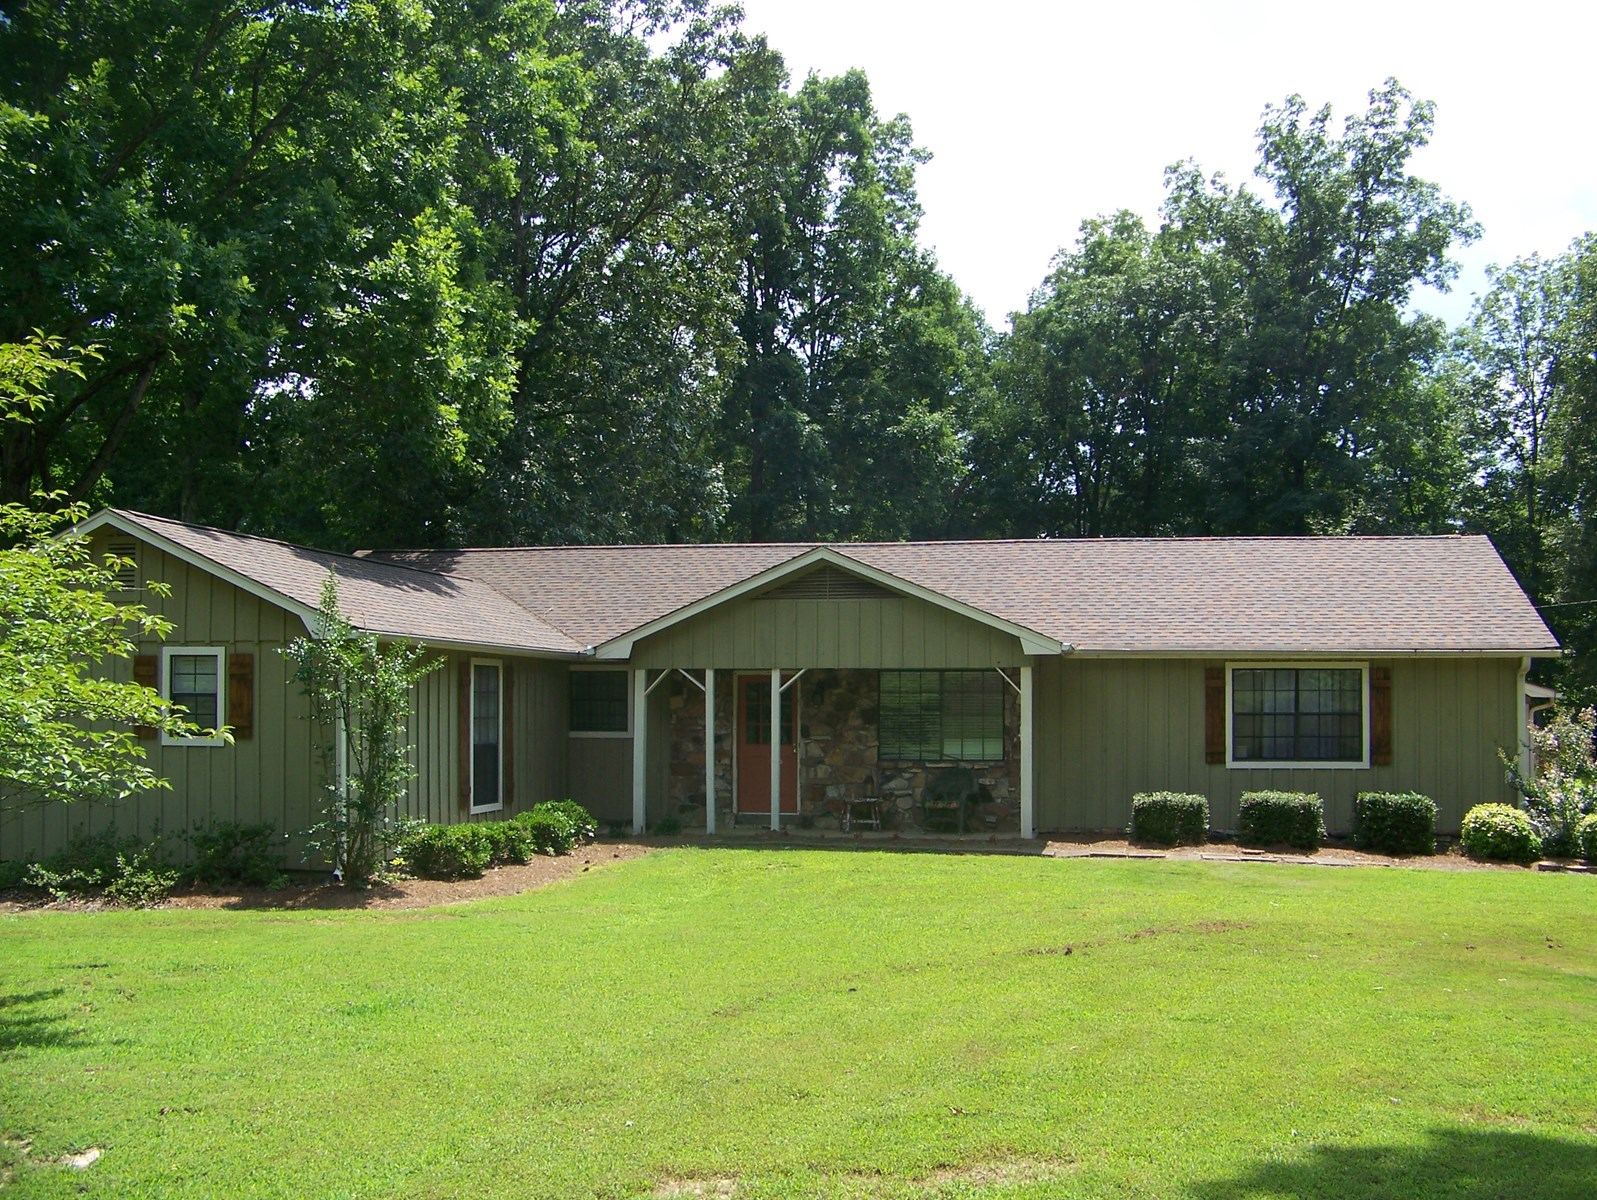 LARGE TENNESSEE COUNTRY HOME WITH ACREAGE FOR SALE